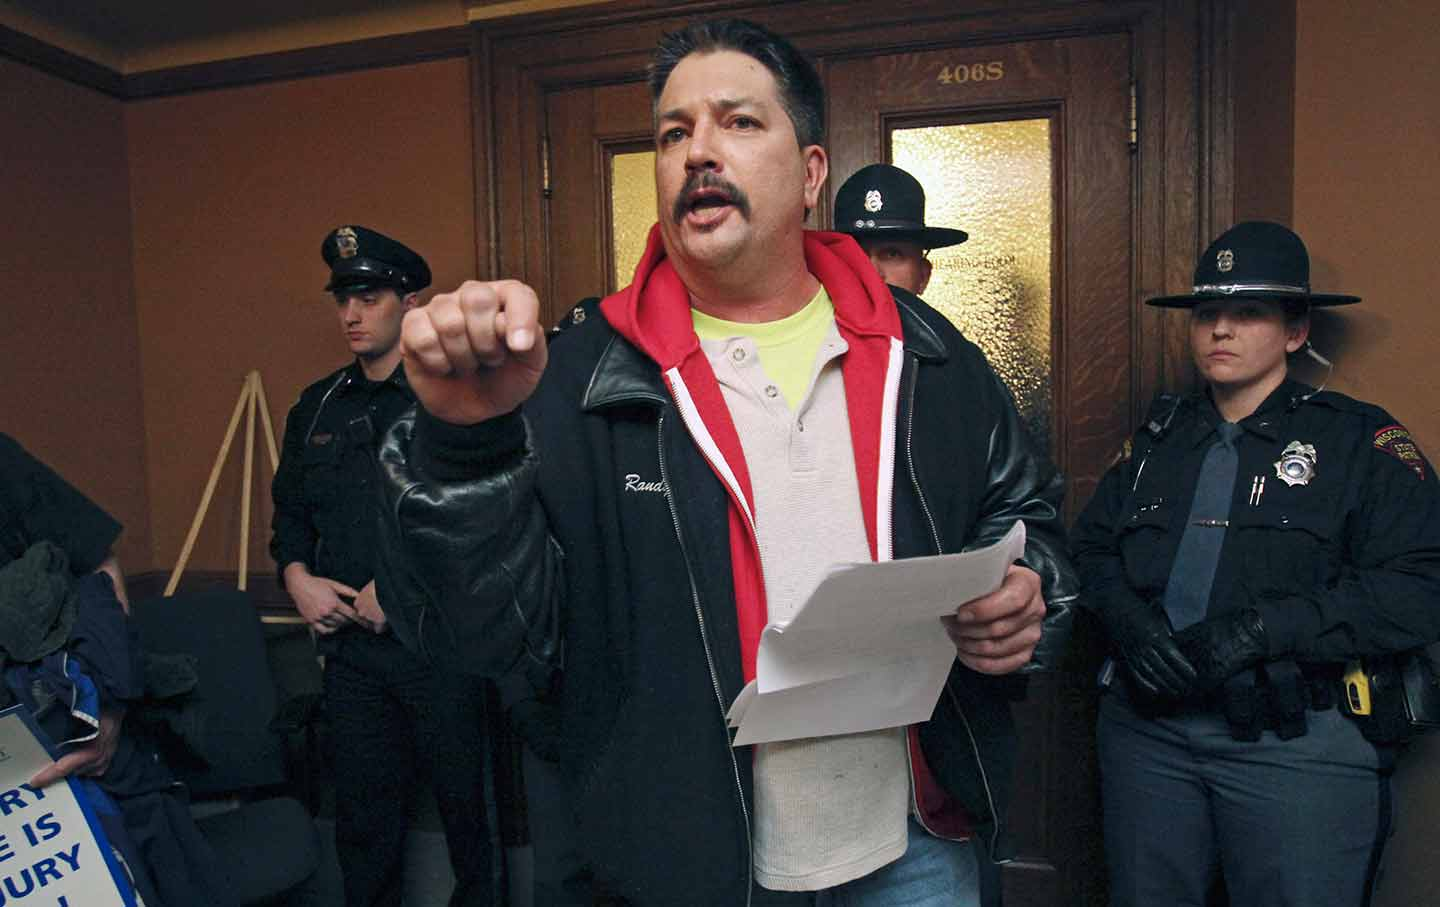 Randy Bryce Wisconsin